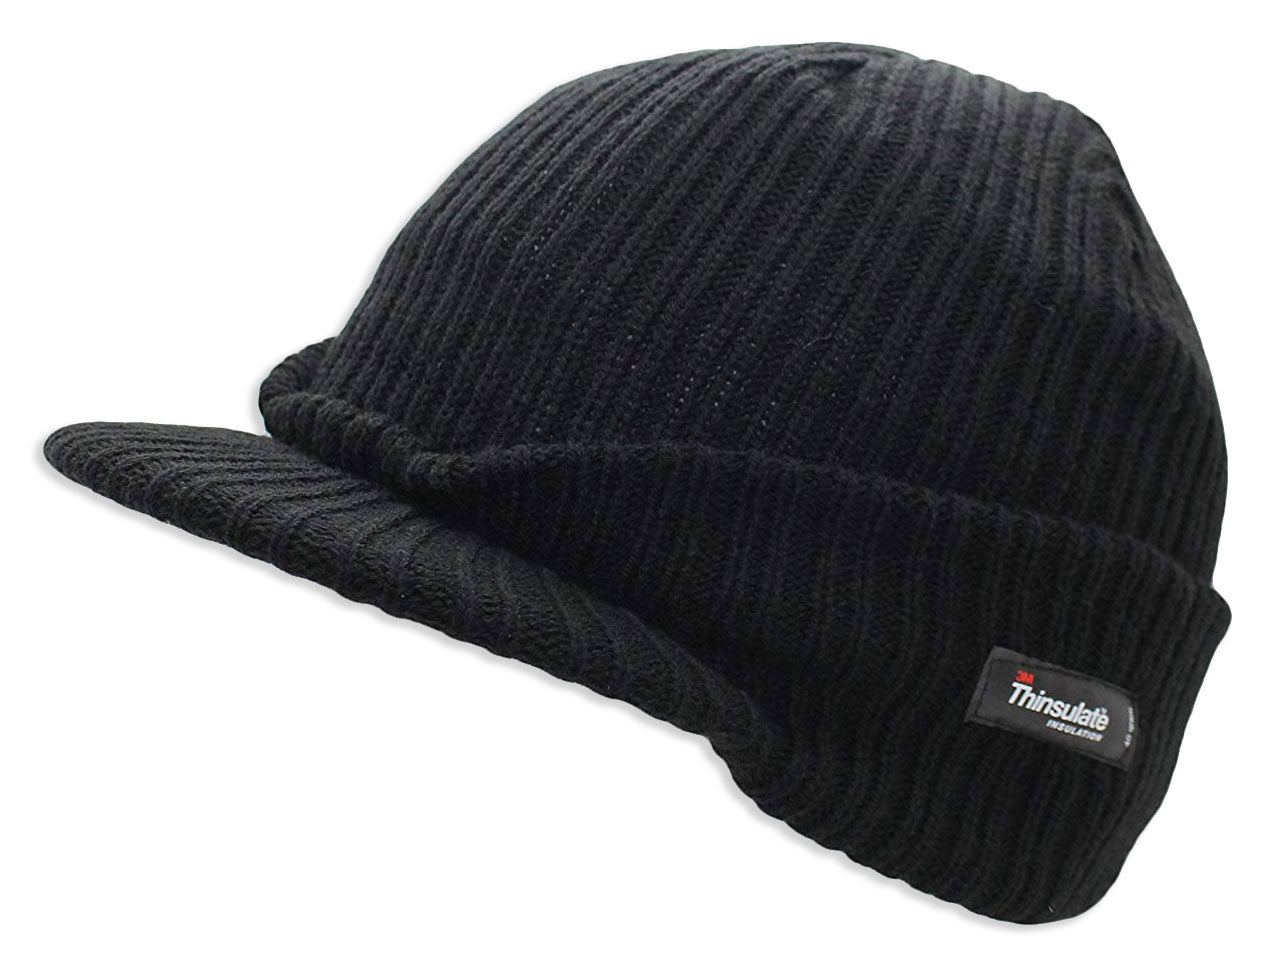 Thinsulate Knitted Peaked Watch Cap in black